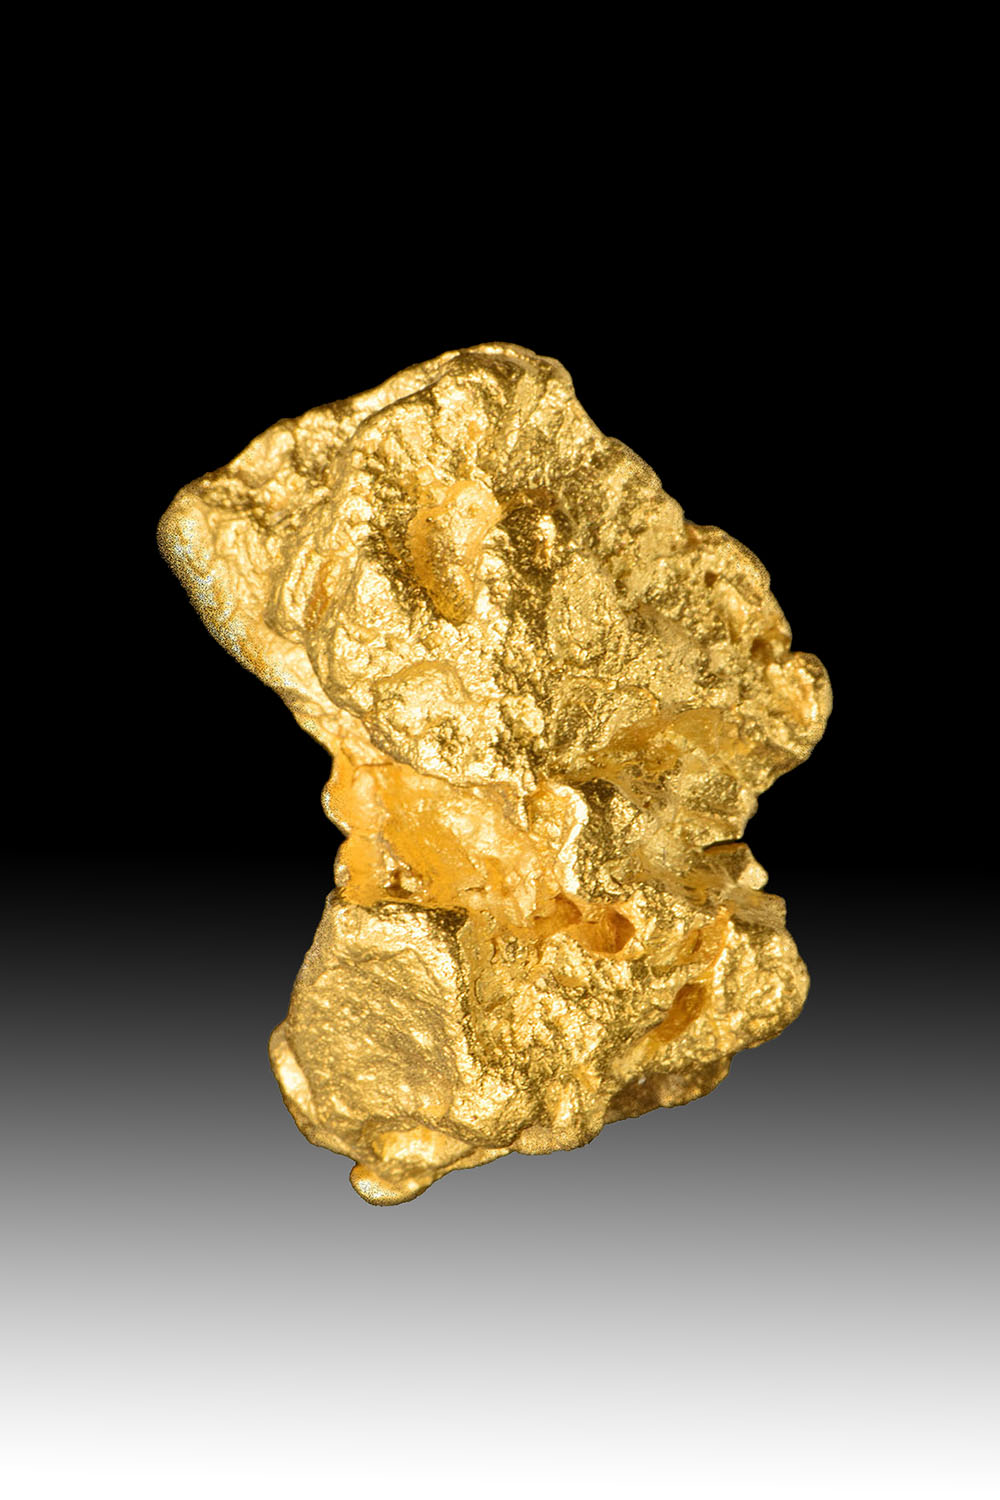 Plump, Textured Jewelry/Investment Grade Australian Gold Nugget